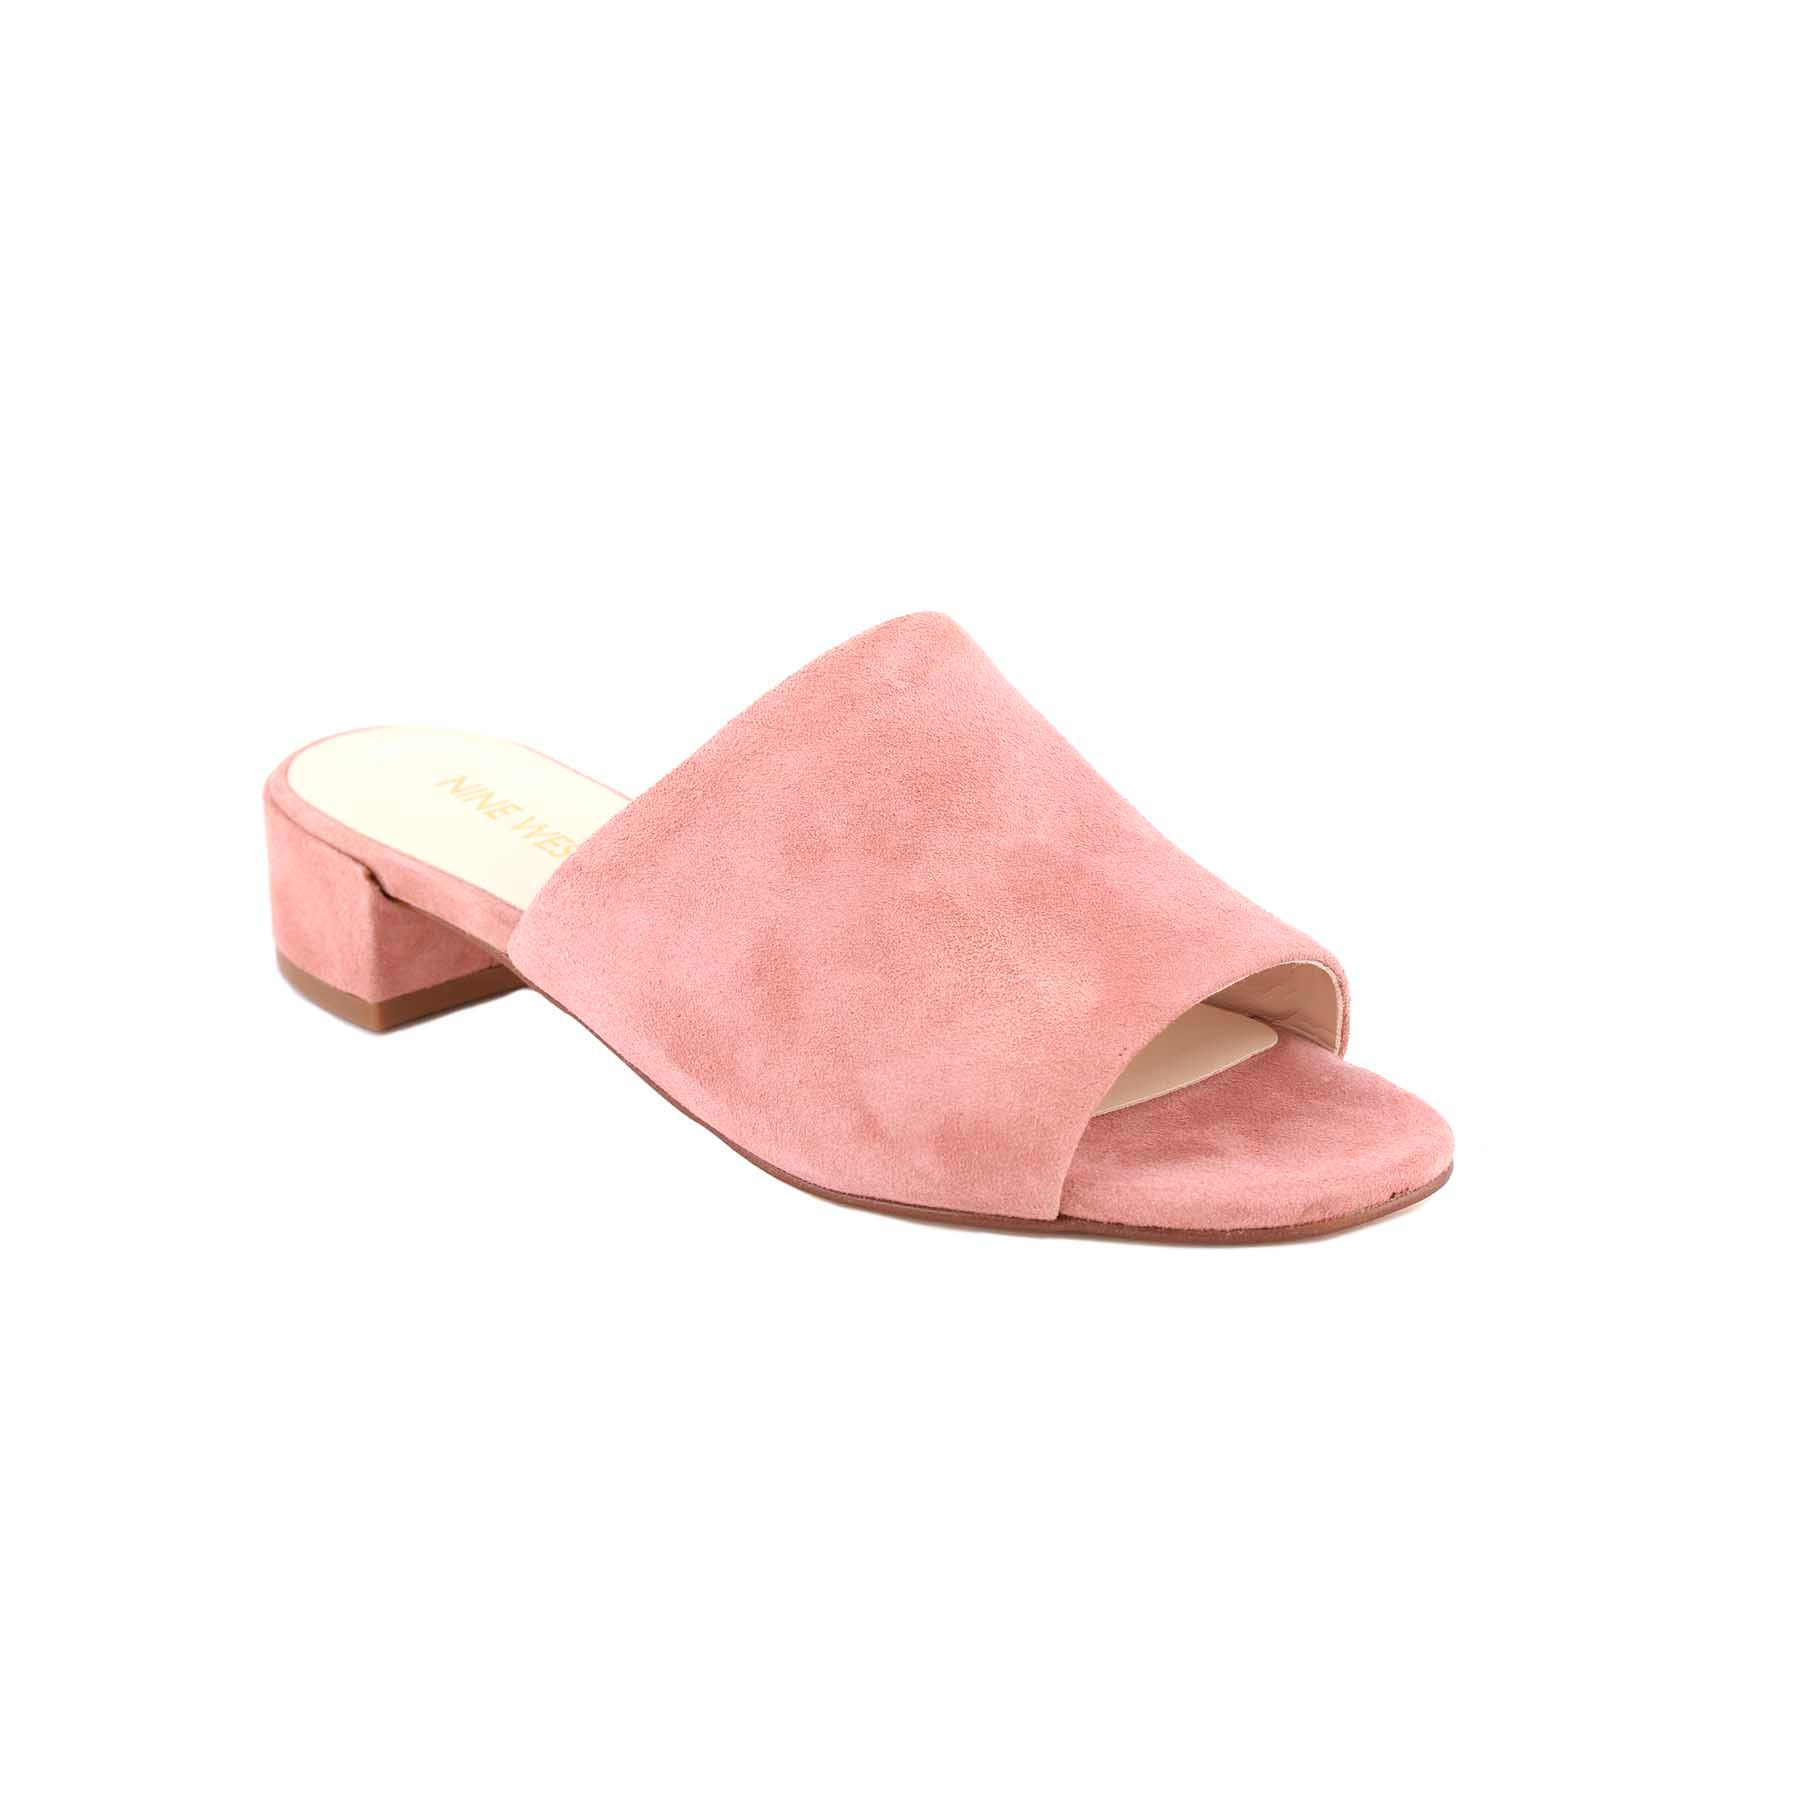 Picture of NW-RAISSA PINK SANDAL NINE WEST